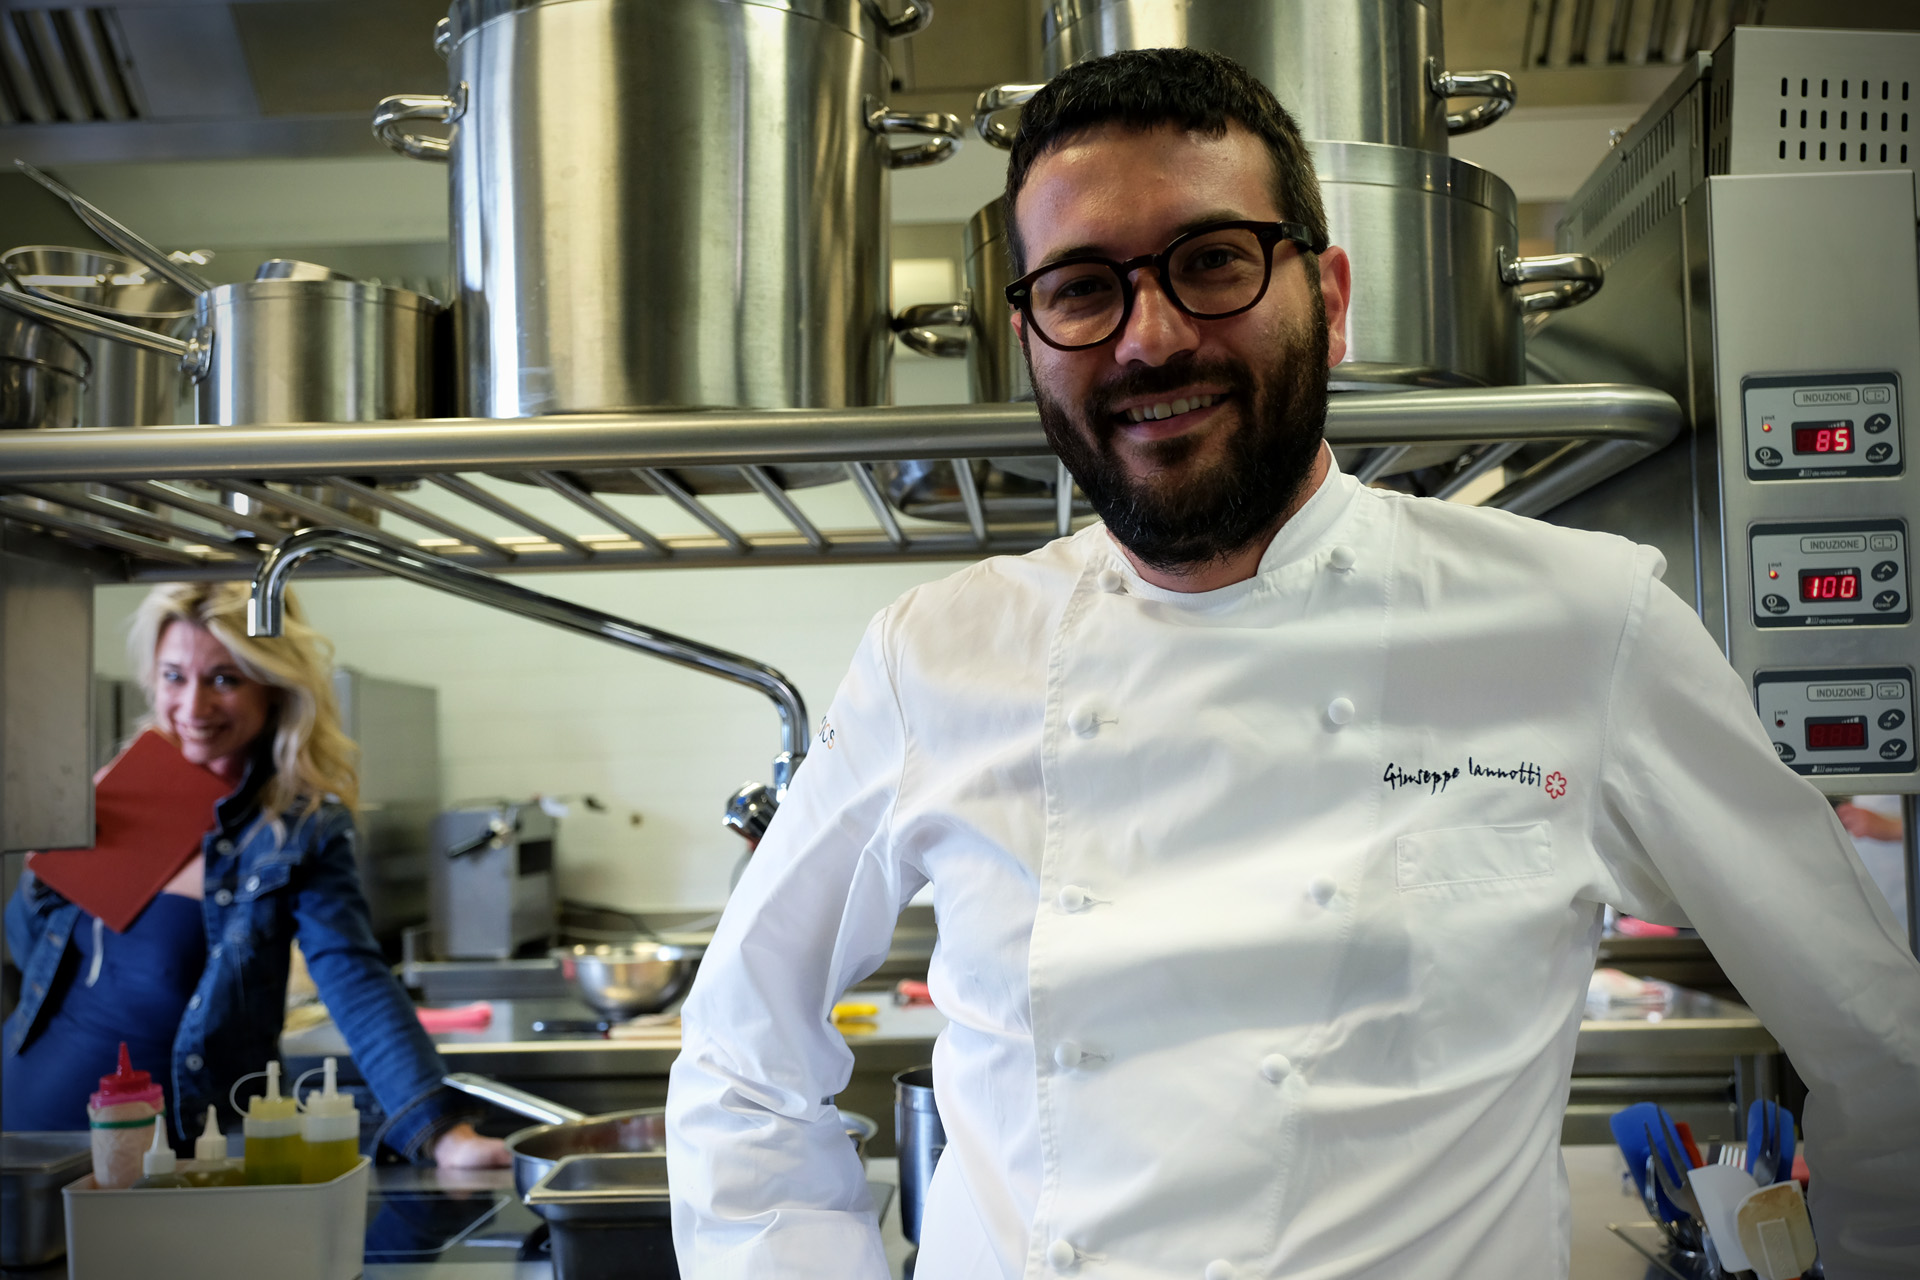 intervista chef stellato